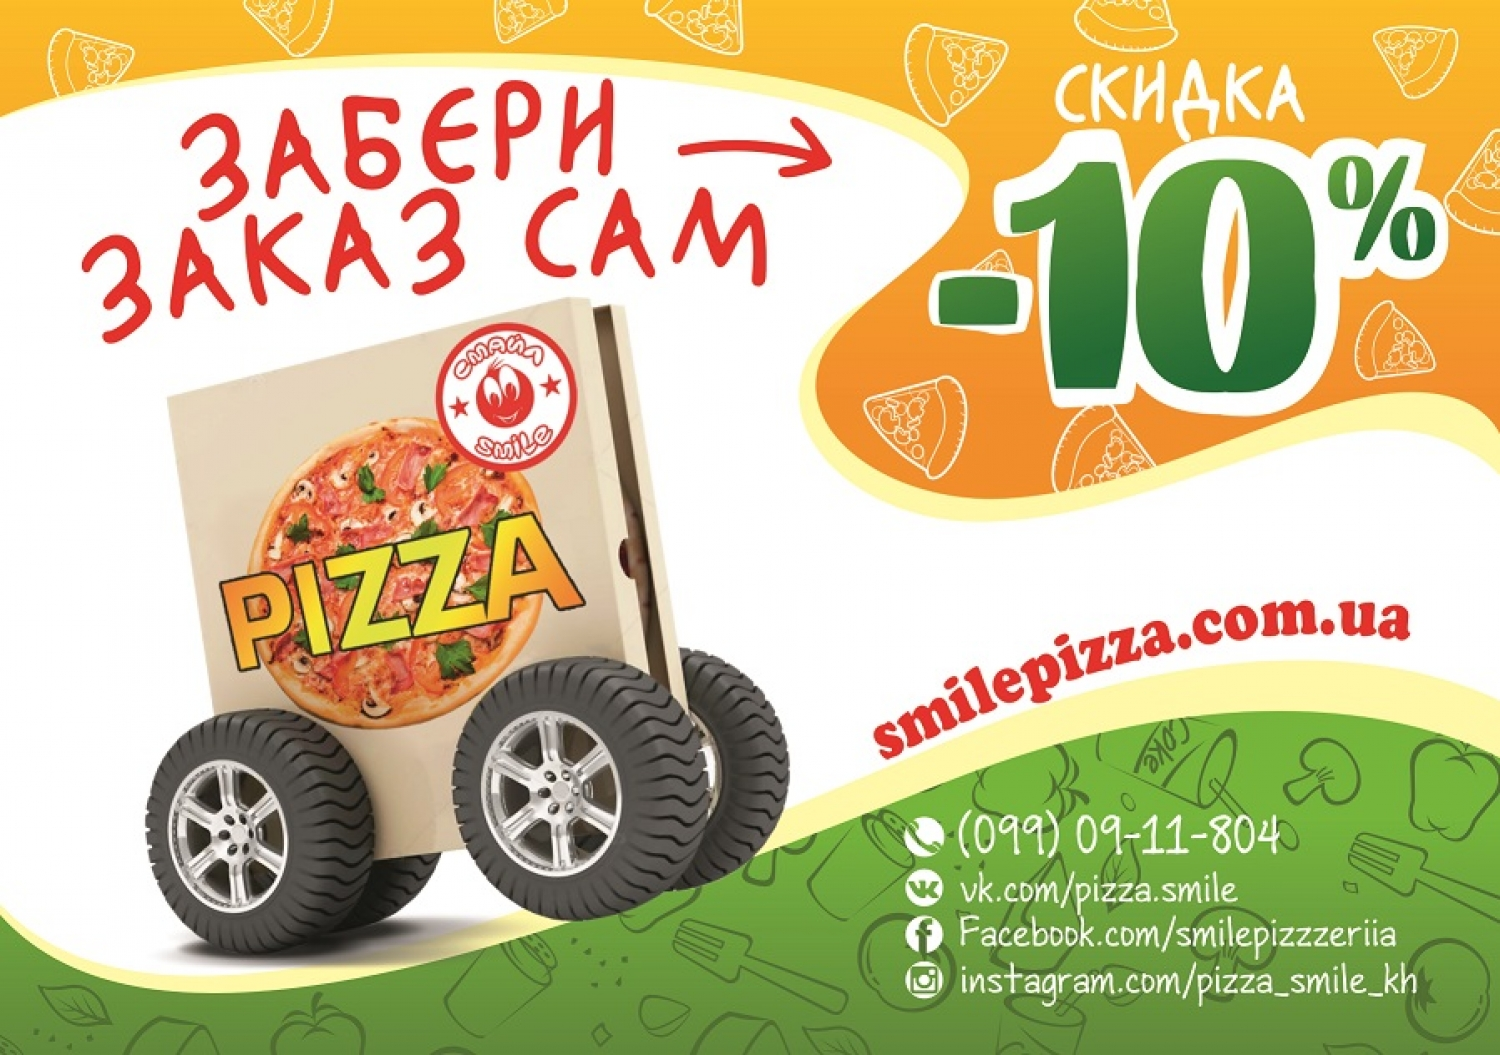 Self-delivery of an order - discount 10% - foto 1124